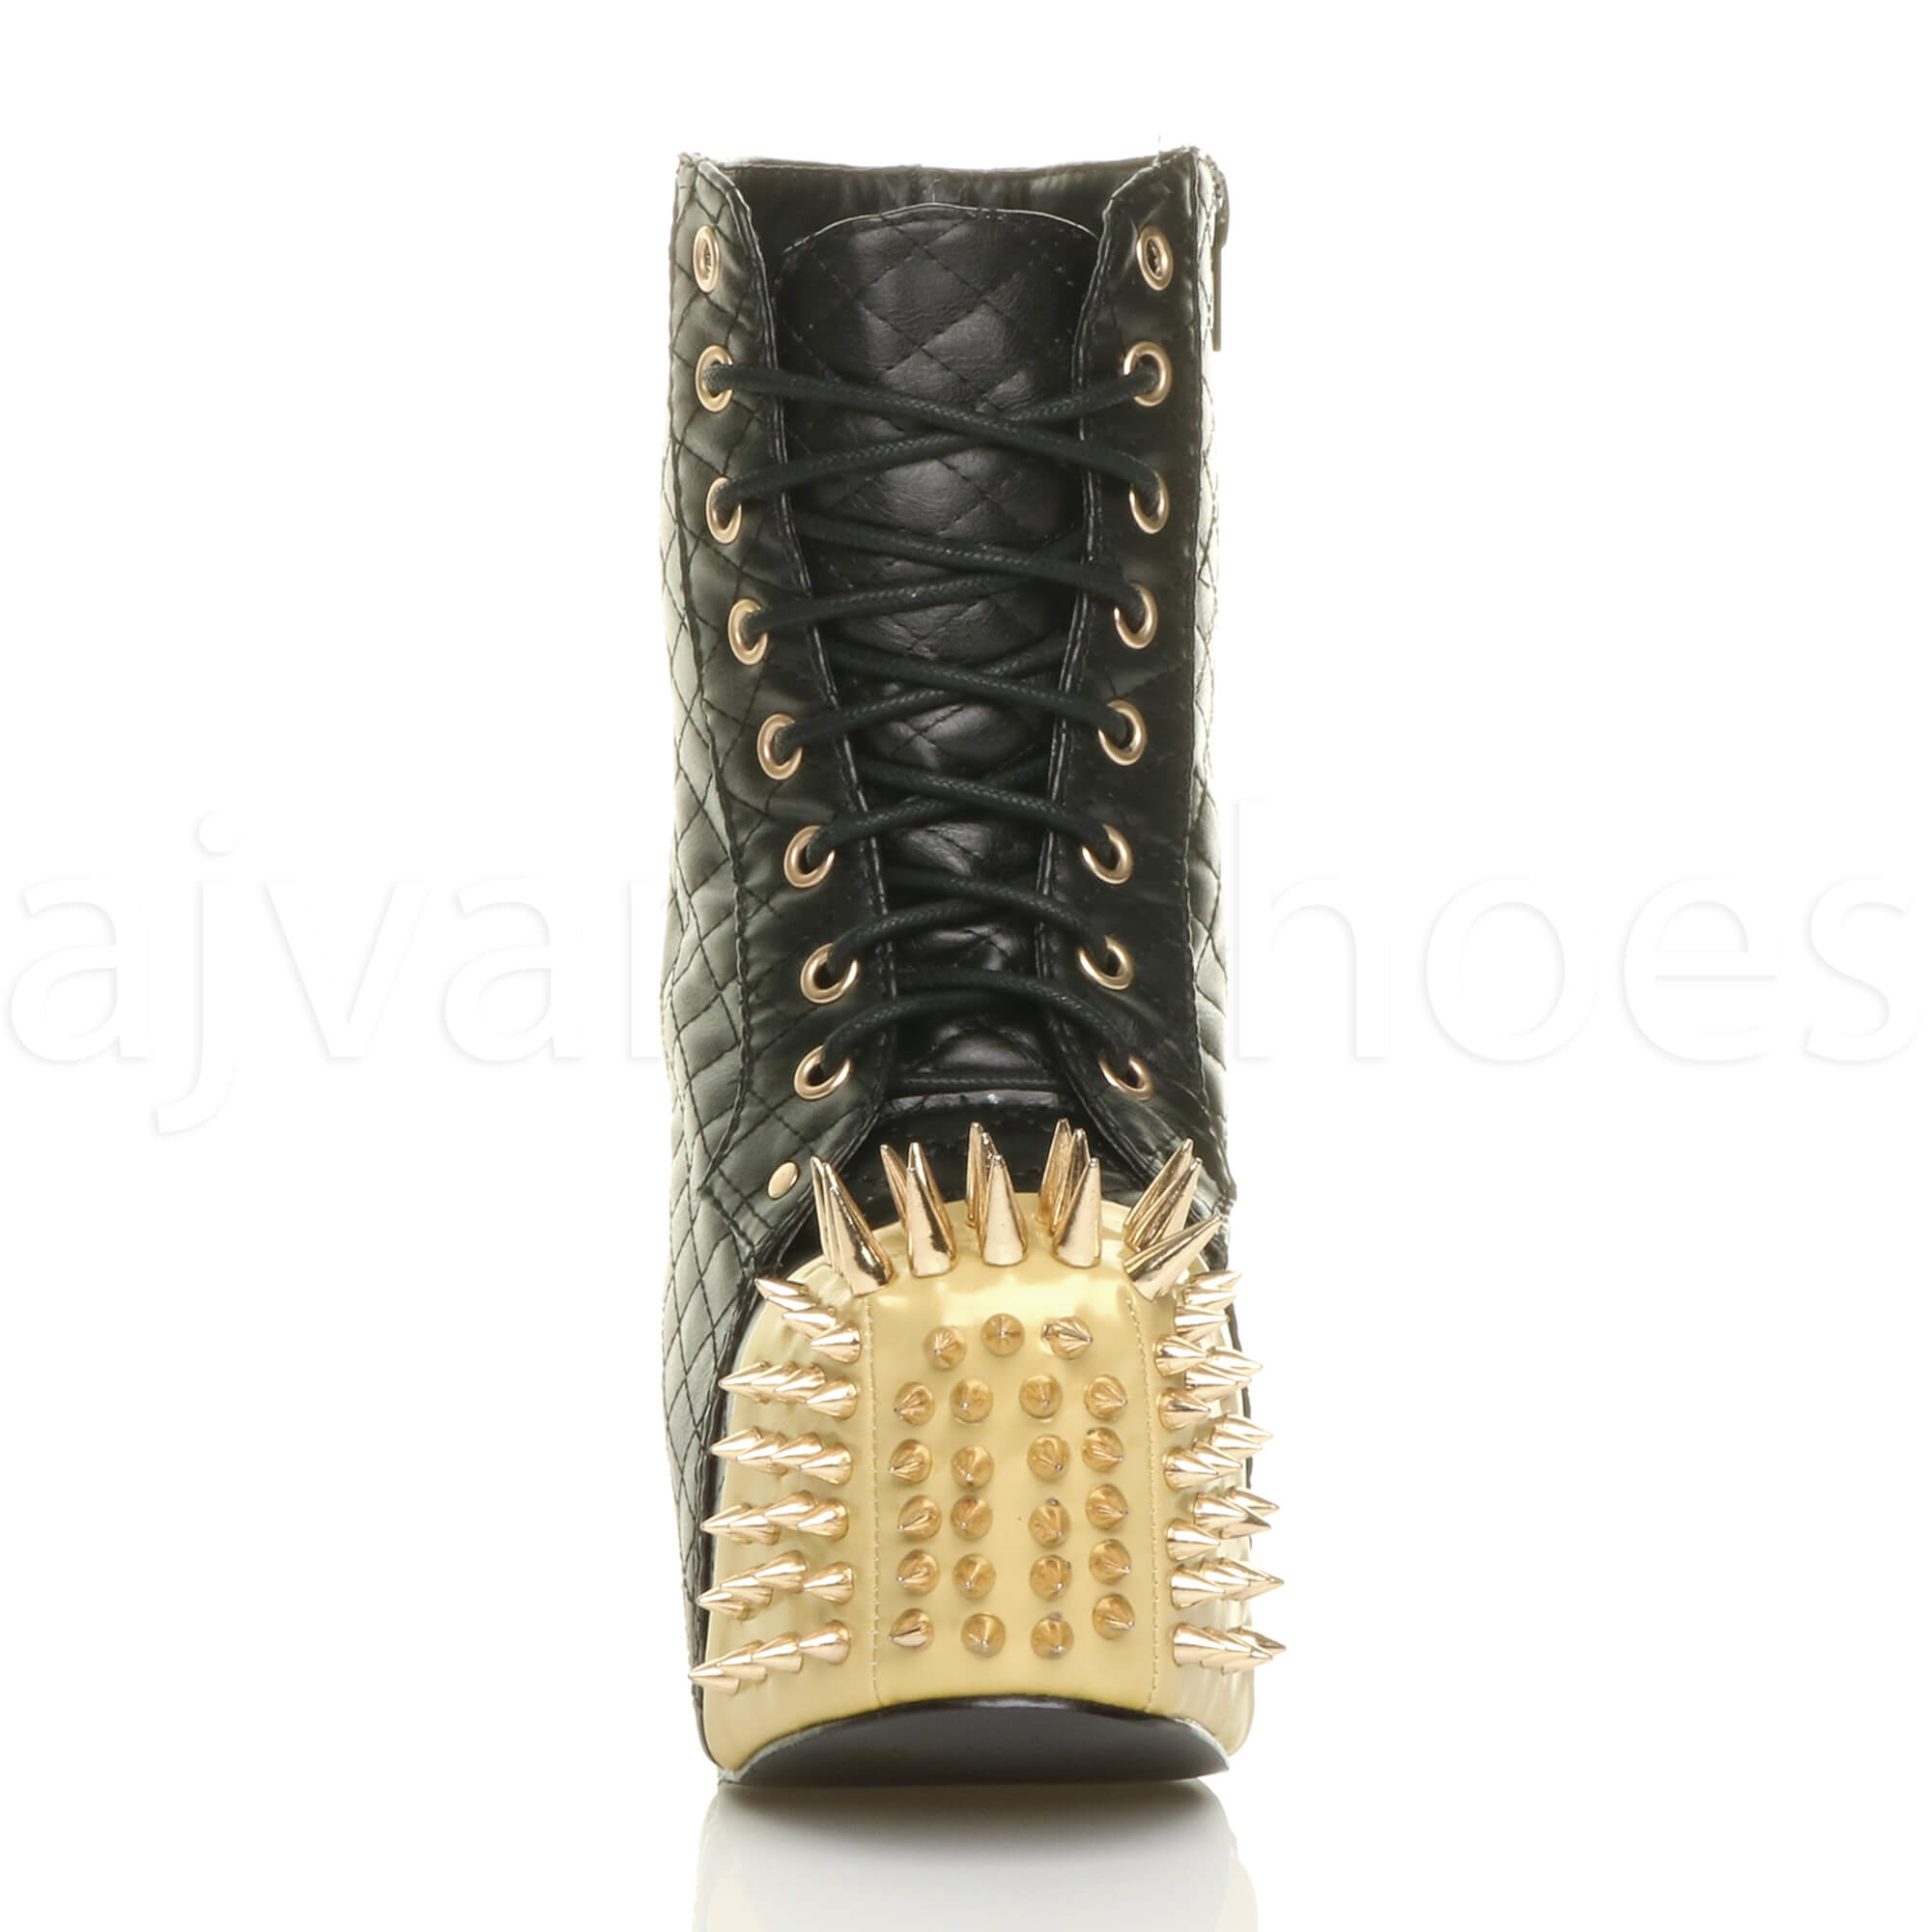 73d5c0fc4f4e WOMENS LADIES HIGH BLOCK HEEL GOTH PUNK SPIKED STUDDED PLATFORM ...